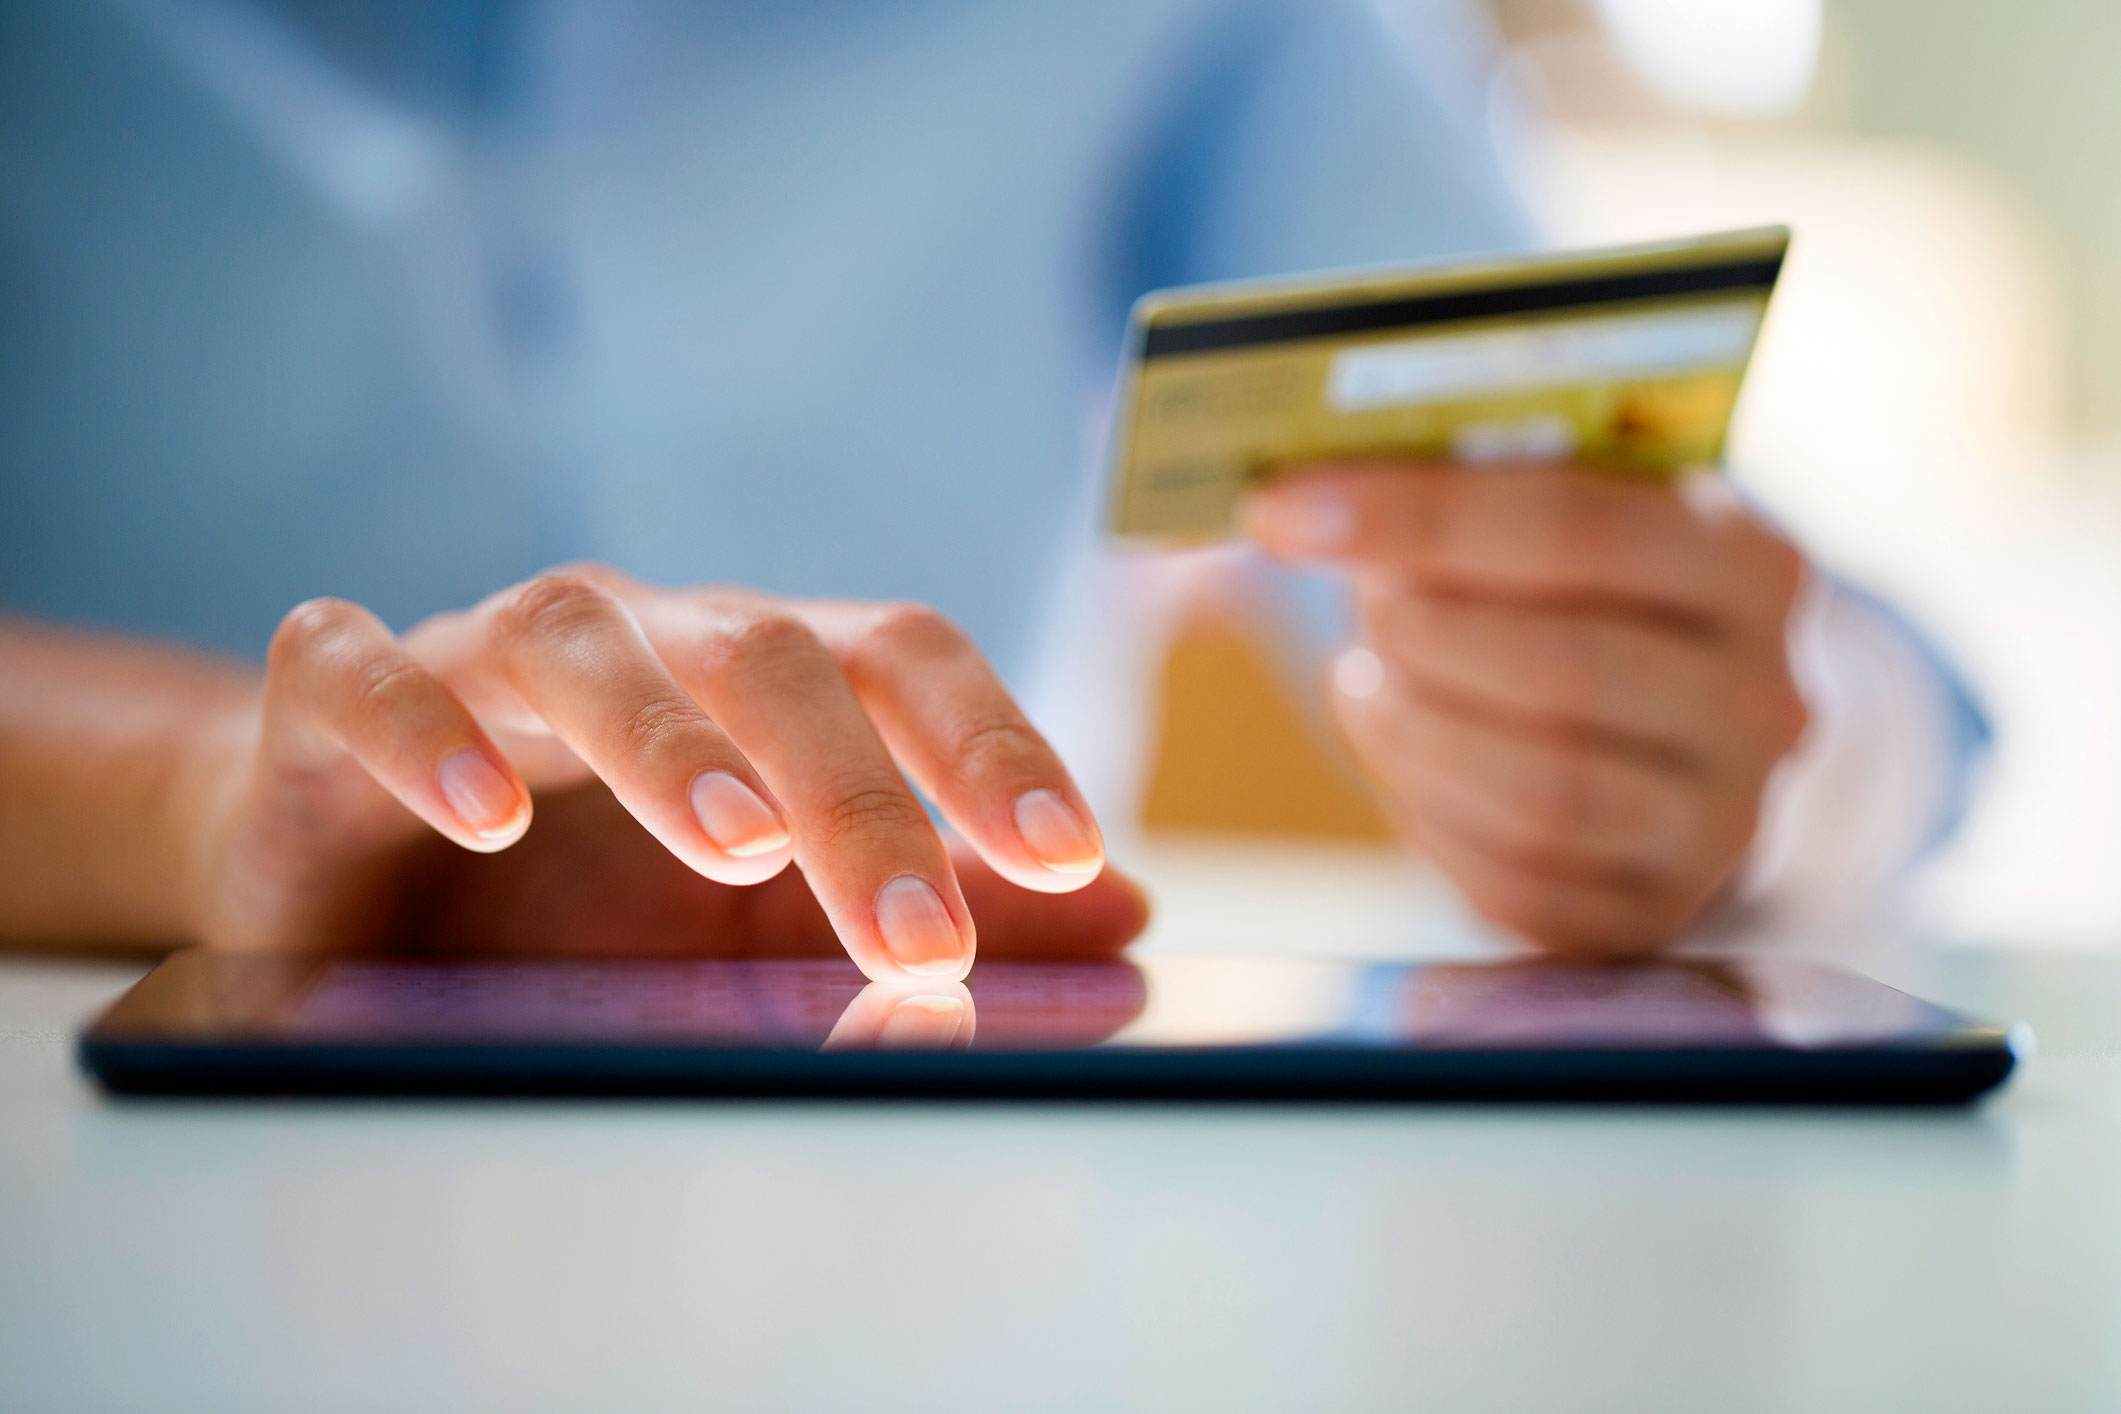 Woman-shopping-online-with-digital-tablet-and-credit-card